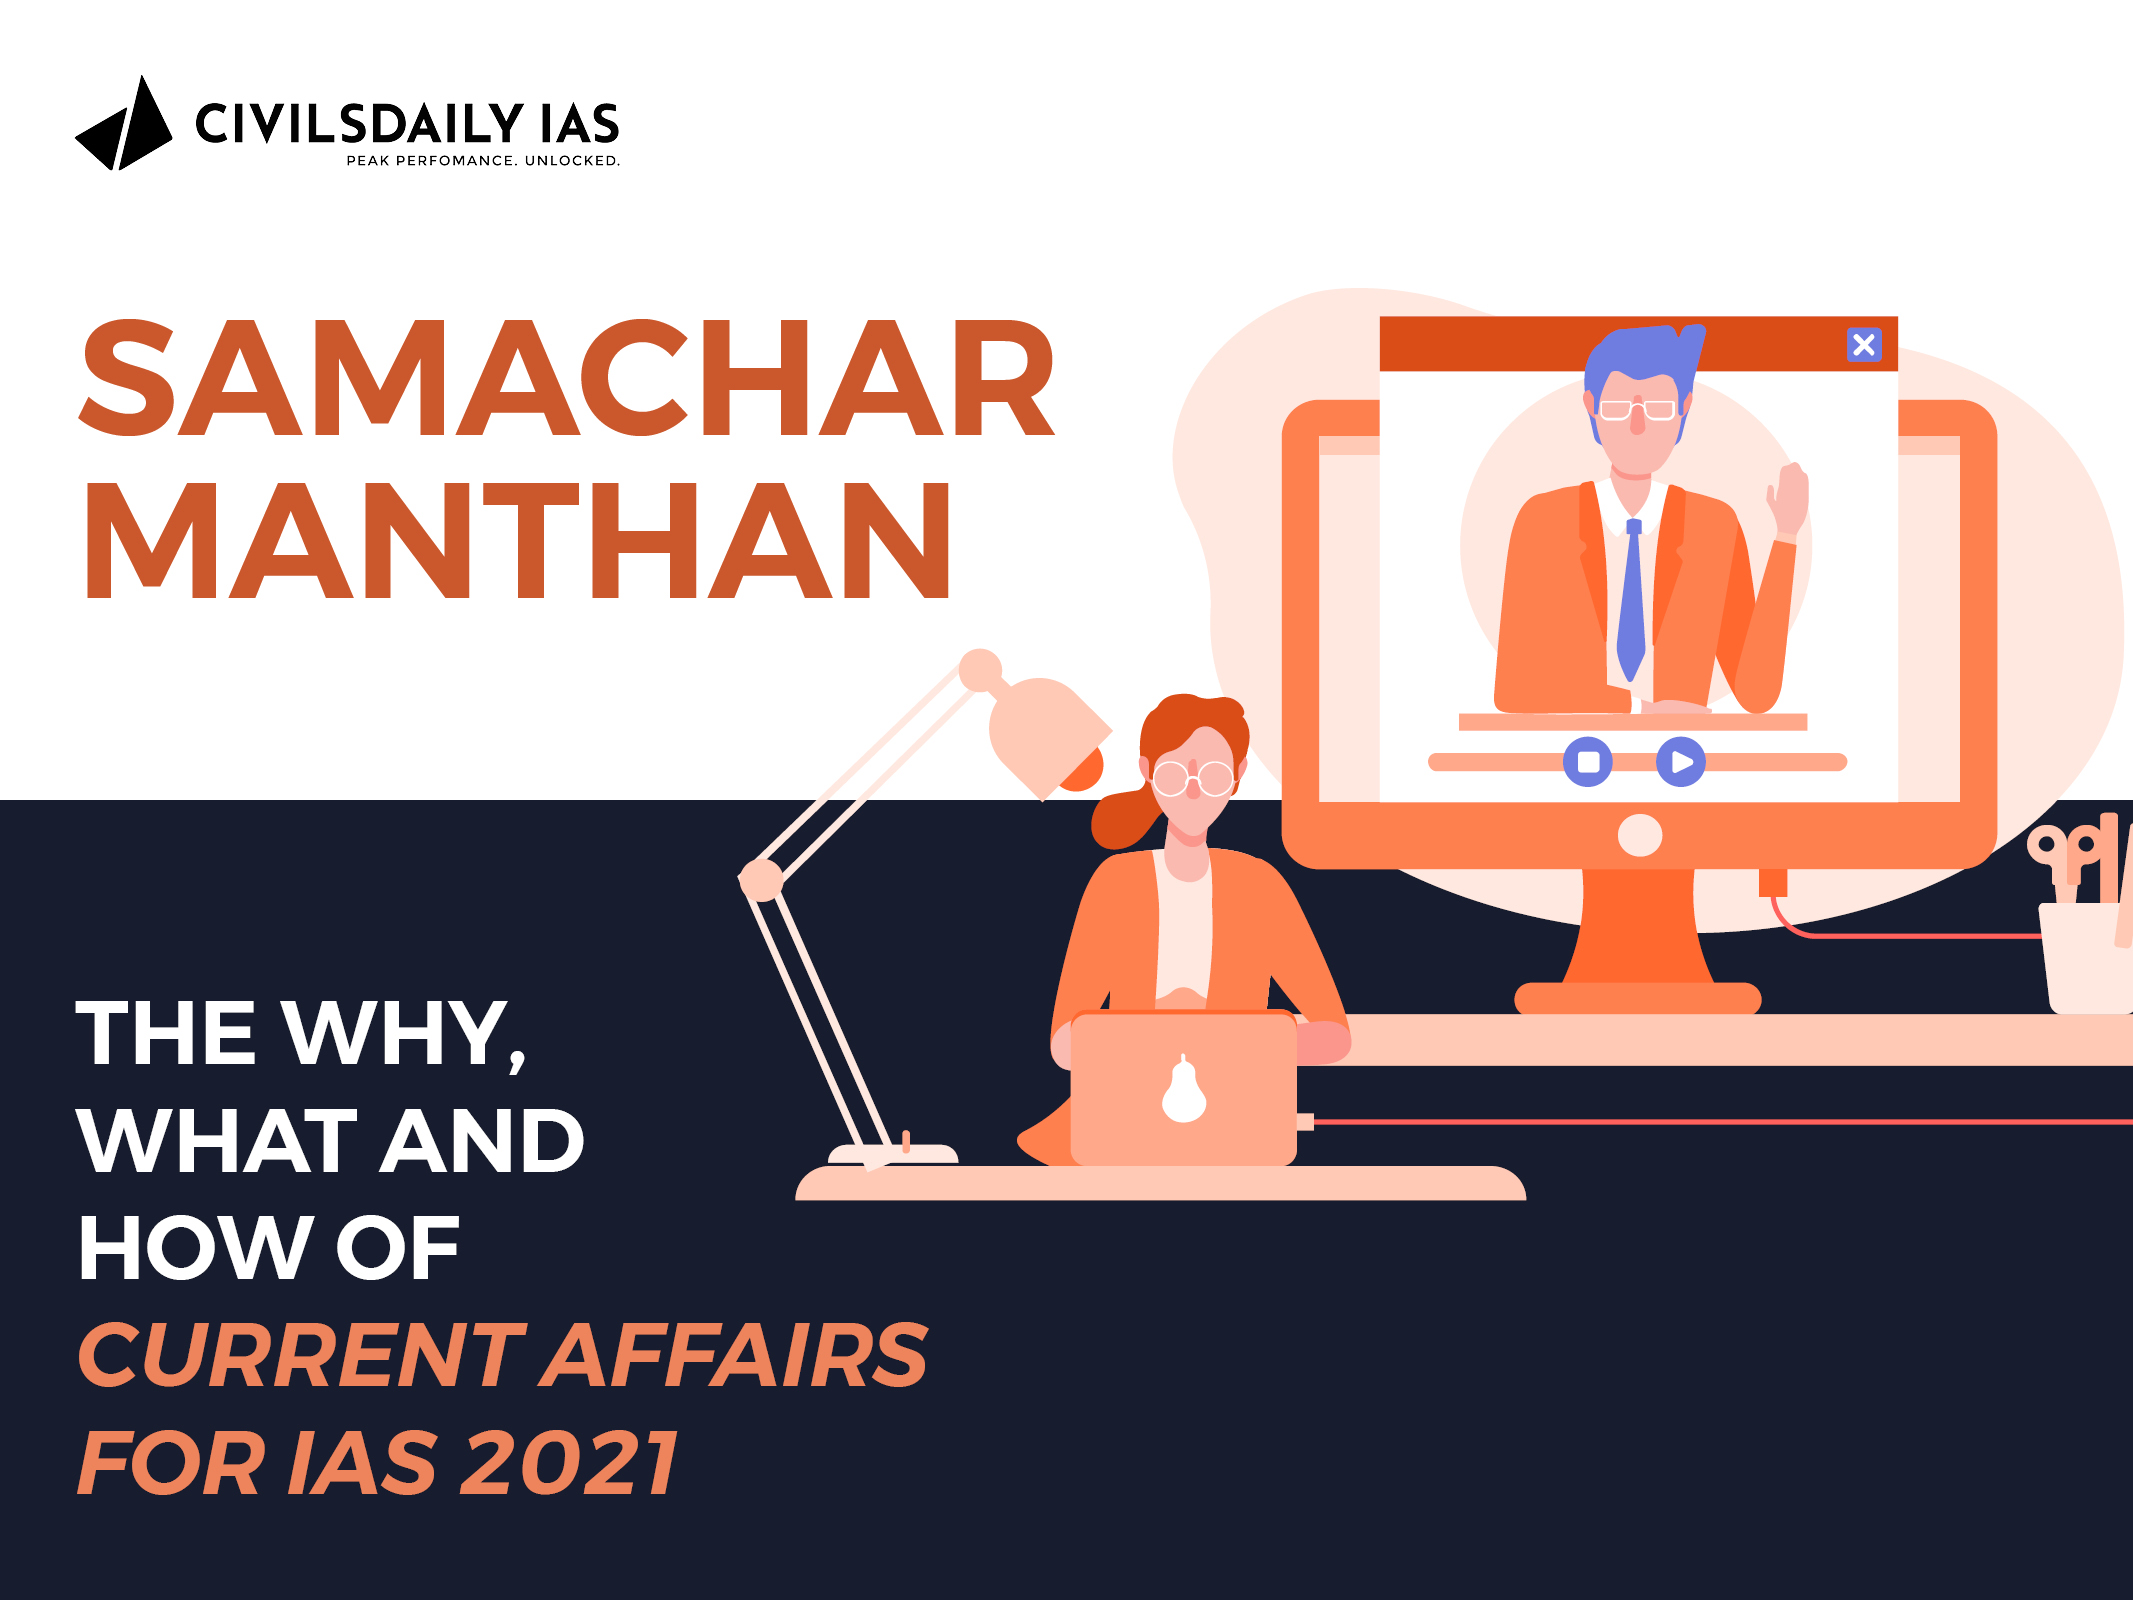 Samachar Manthan Civilsdaily IAS Current Affairs UPSC